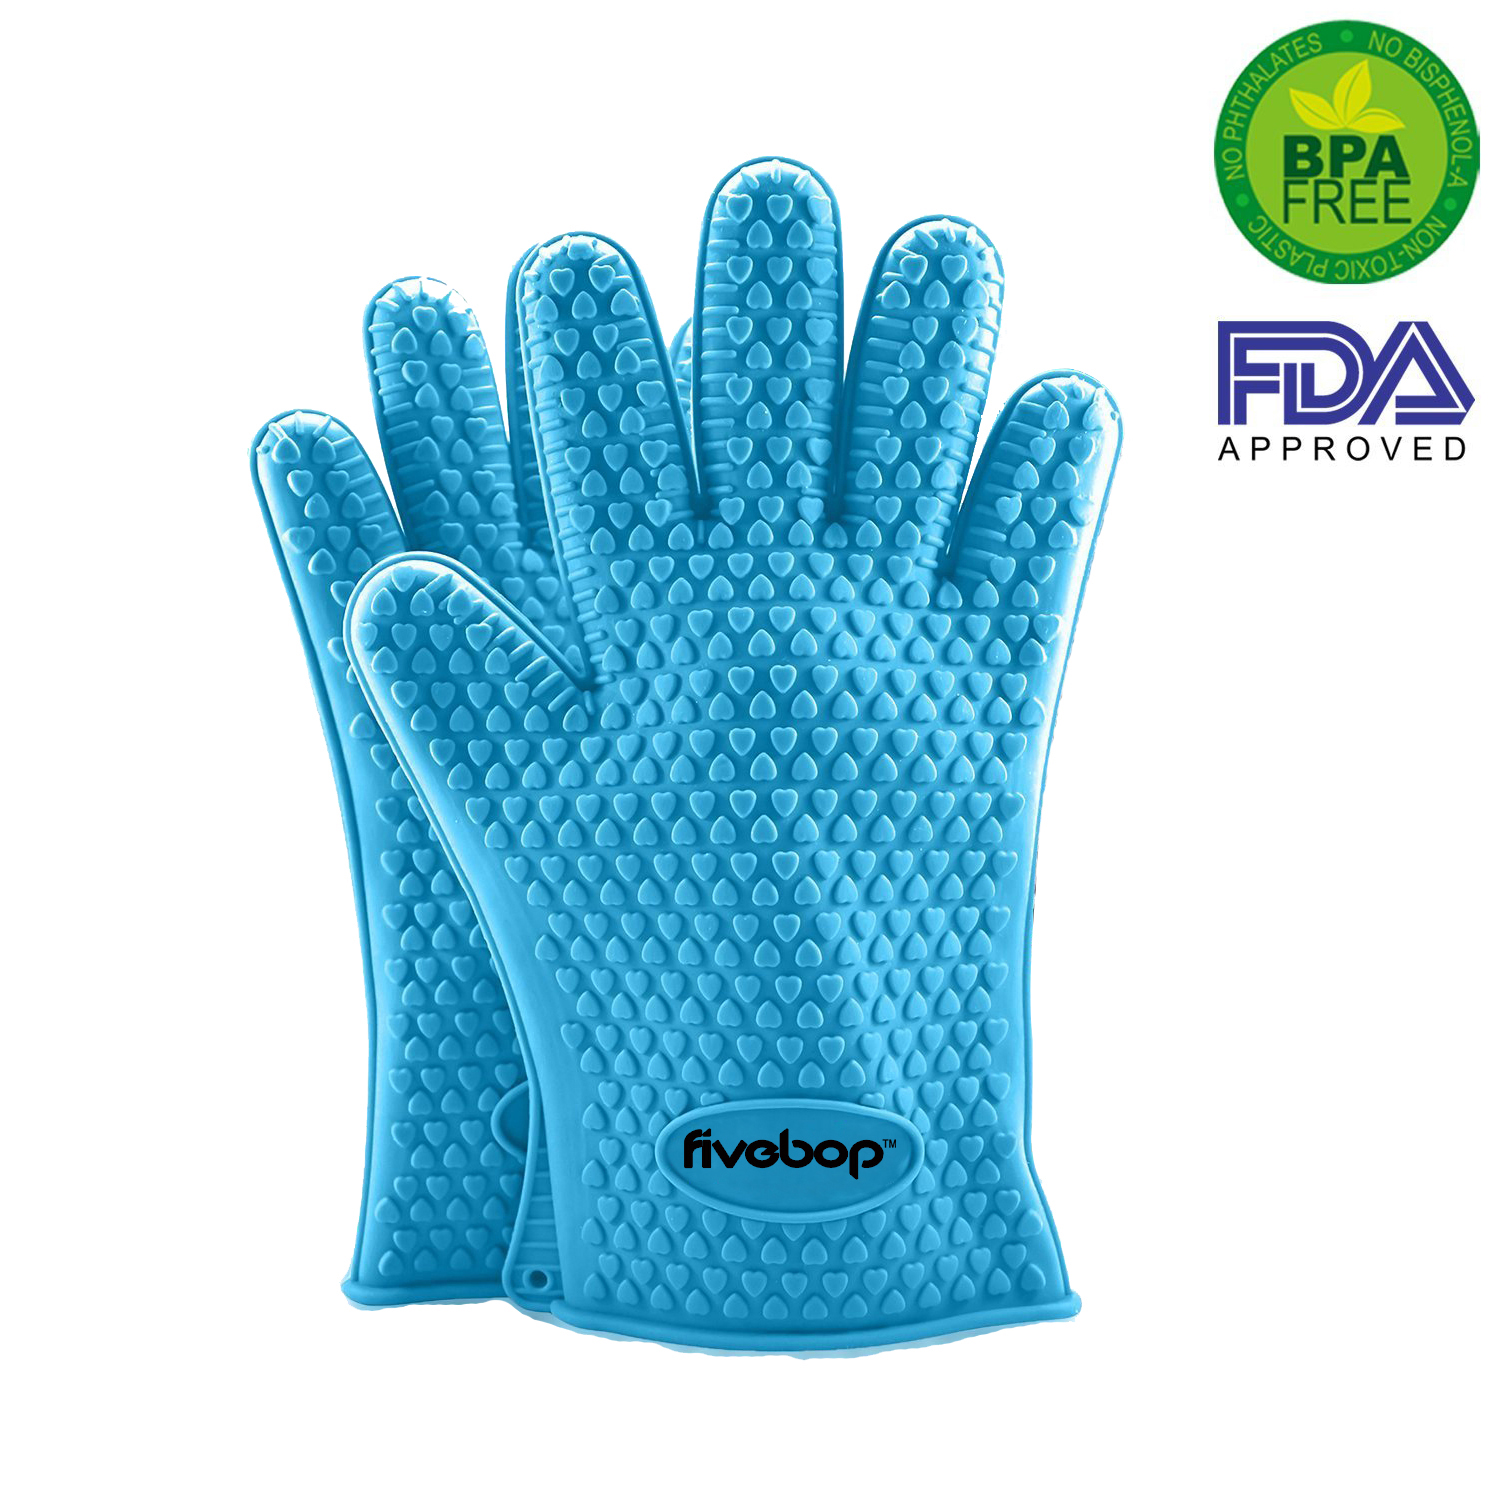 Fivebop™ Silicone Oven Gloves with Fingers - BBQ Oven Mitts - Sky Blue